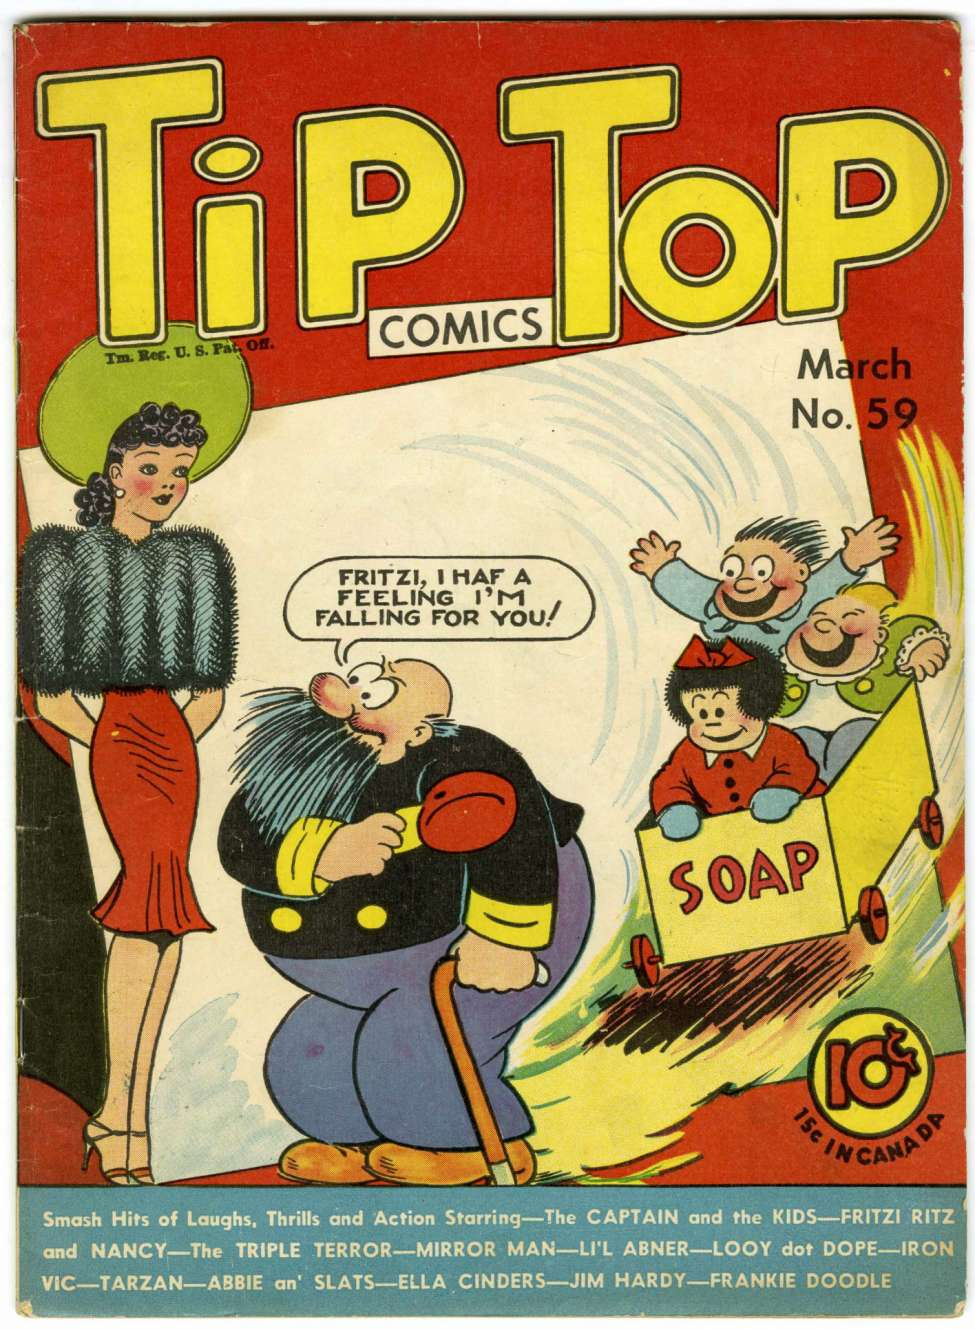 Comic Book Cover For Tip Top Comics v5 11 (59)